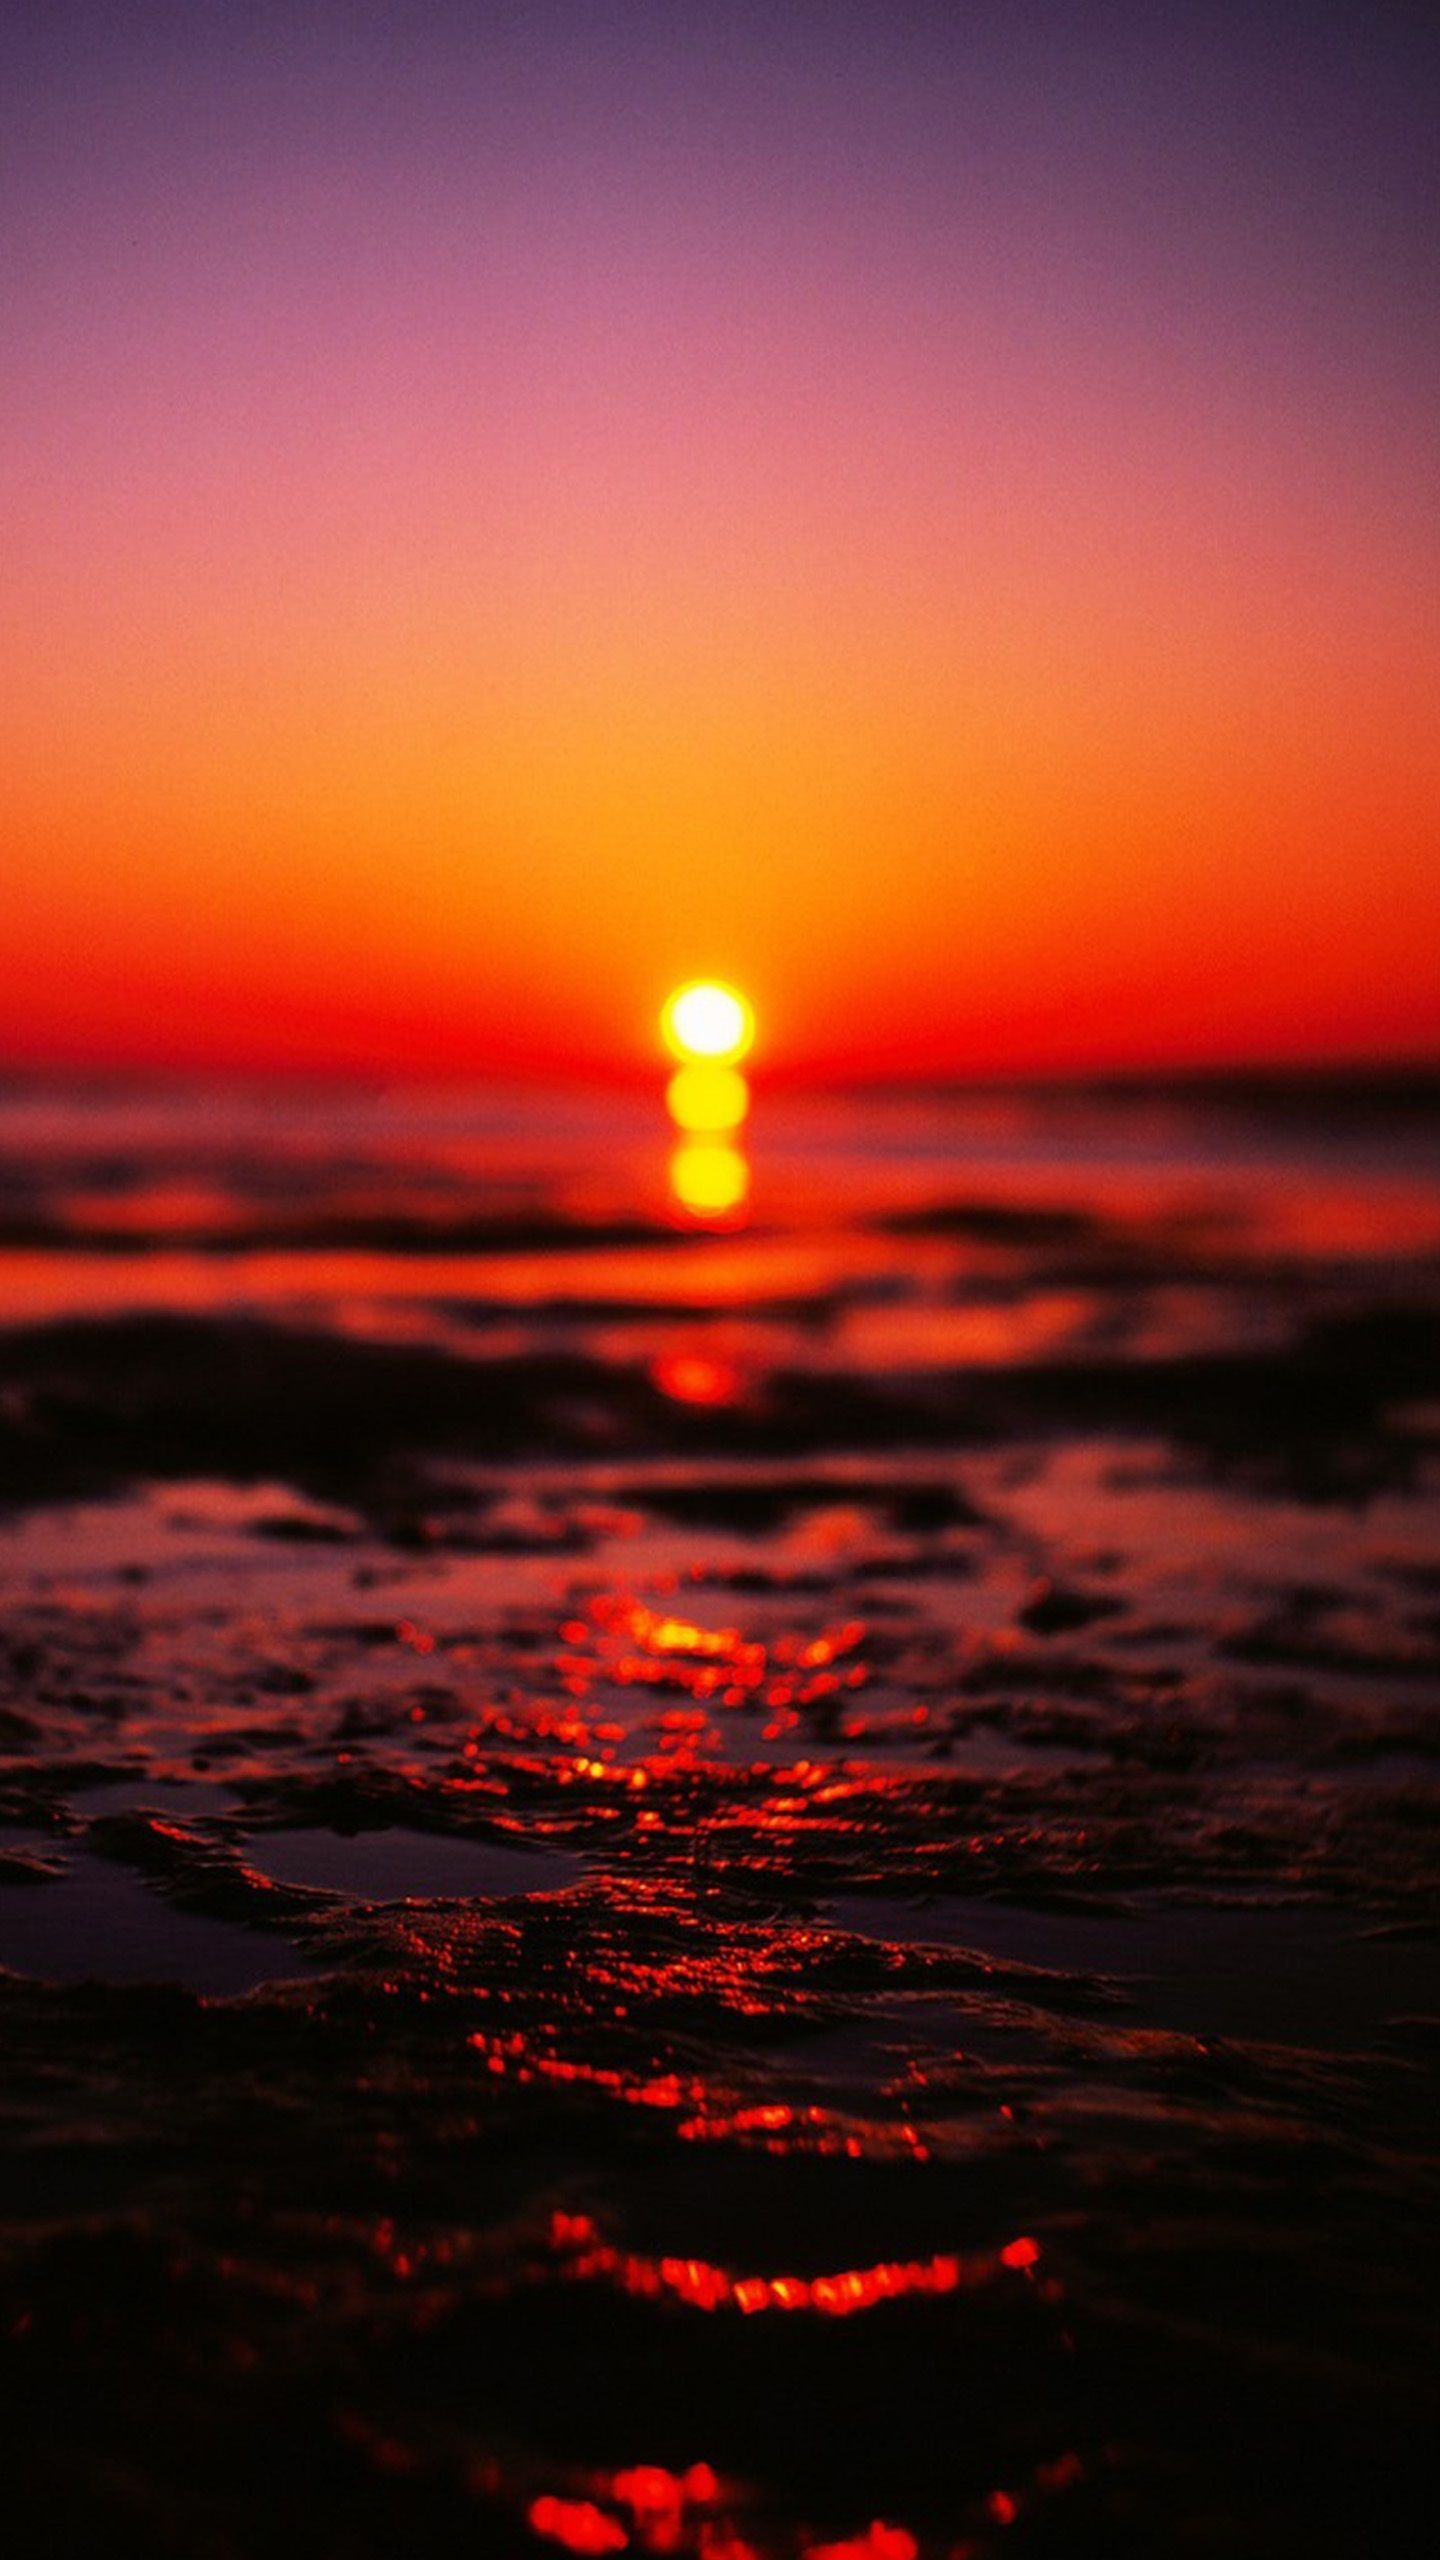 Blurry Sunset Wallpapers 36 Wallpapers Hd Wallpapers Sunset Iphone Wallpaper Beautiful Nature Wallpaper Sunset Wallpaper